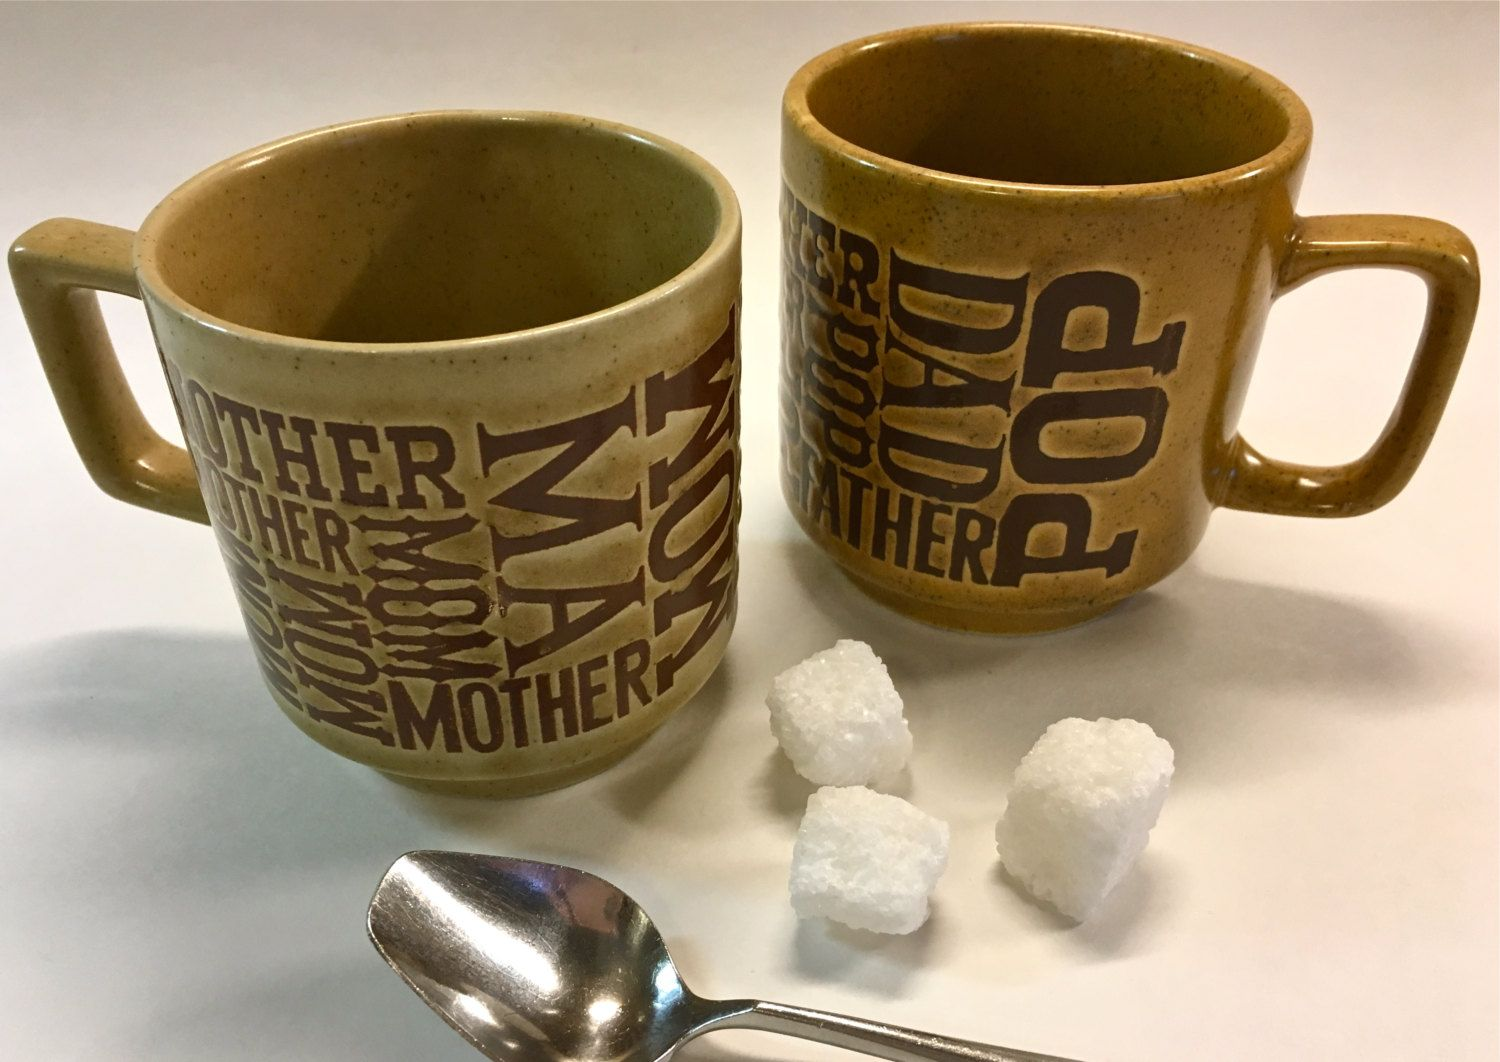 Vintage Retro Coffee Mugs For Mom Mother Ma And Dad Father Pop